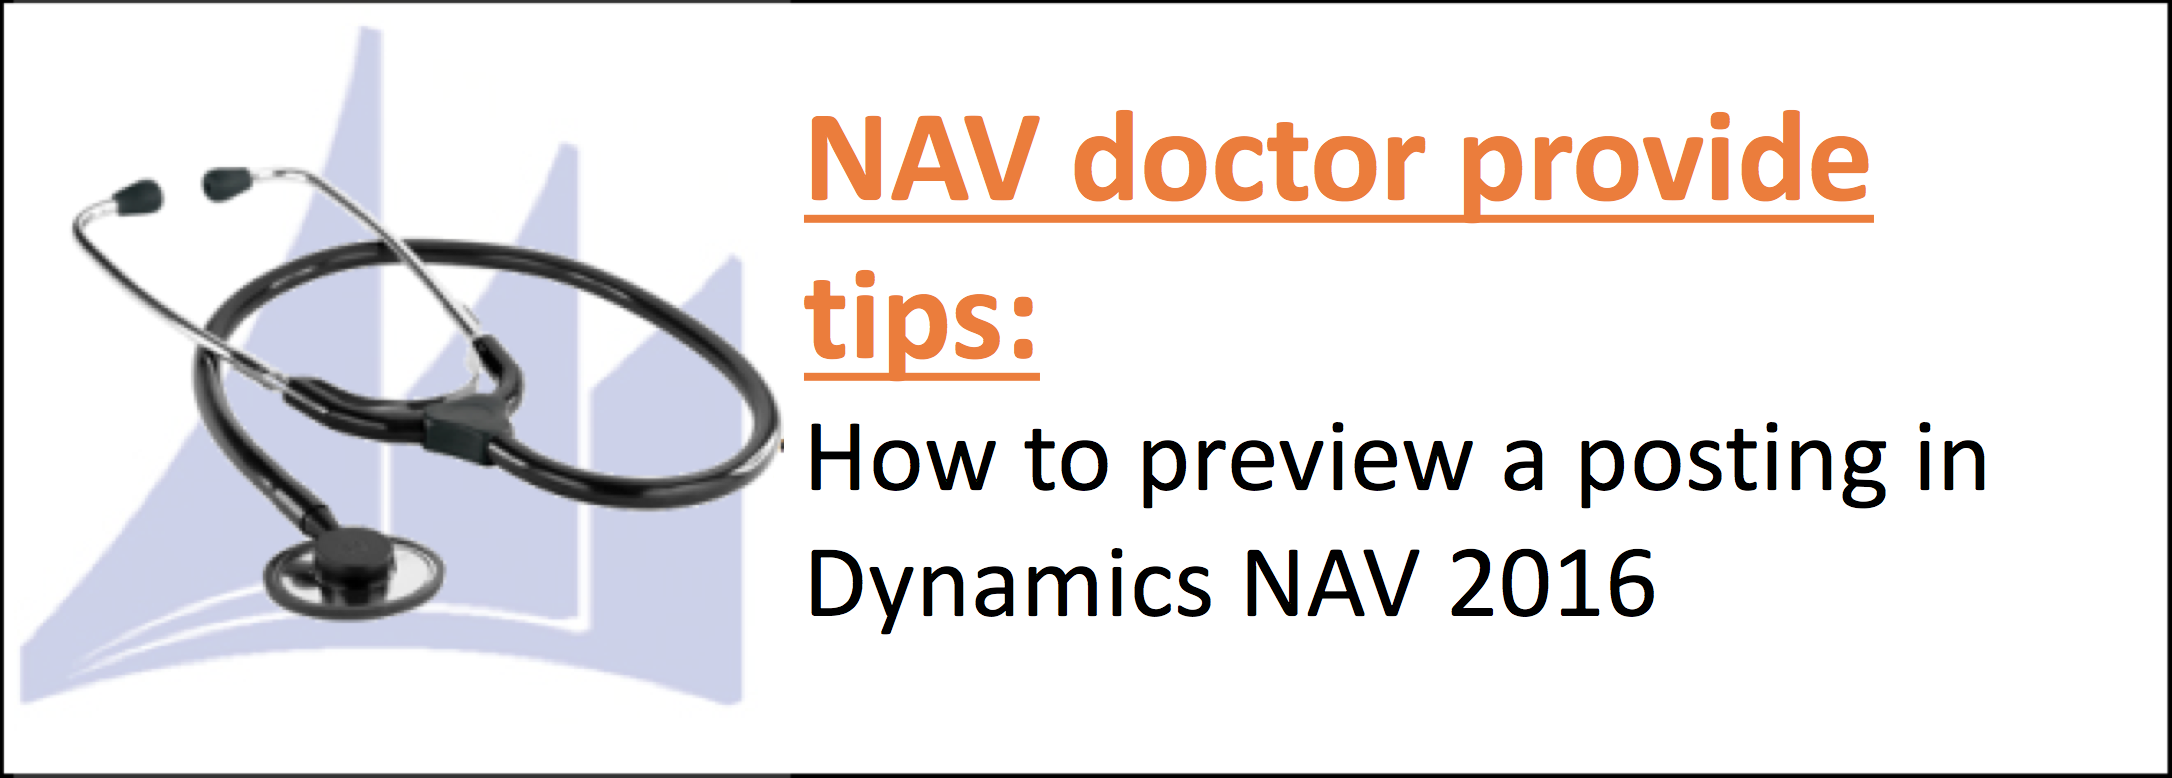 How to preview a posting in Dynamics NAV 2016